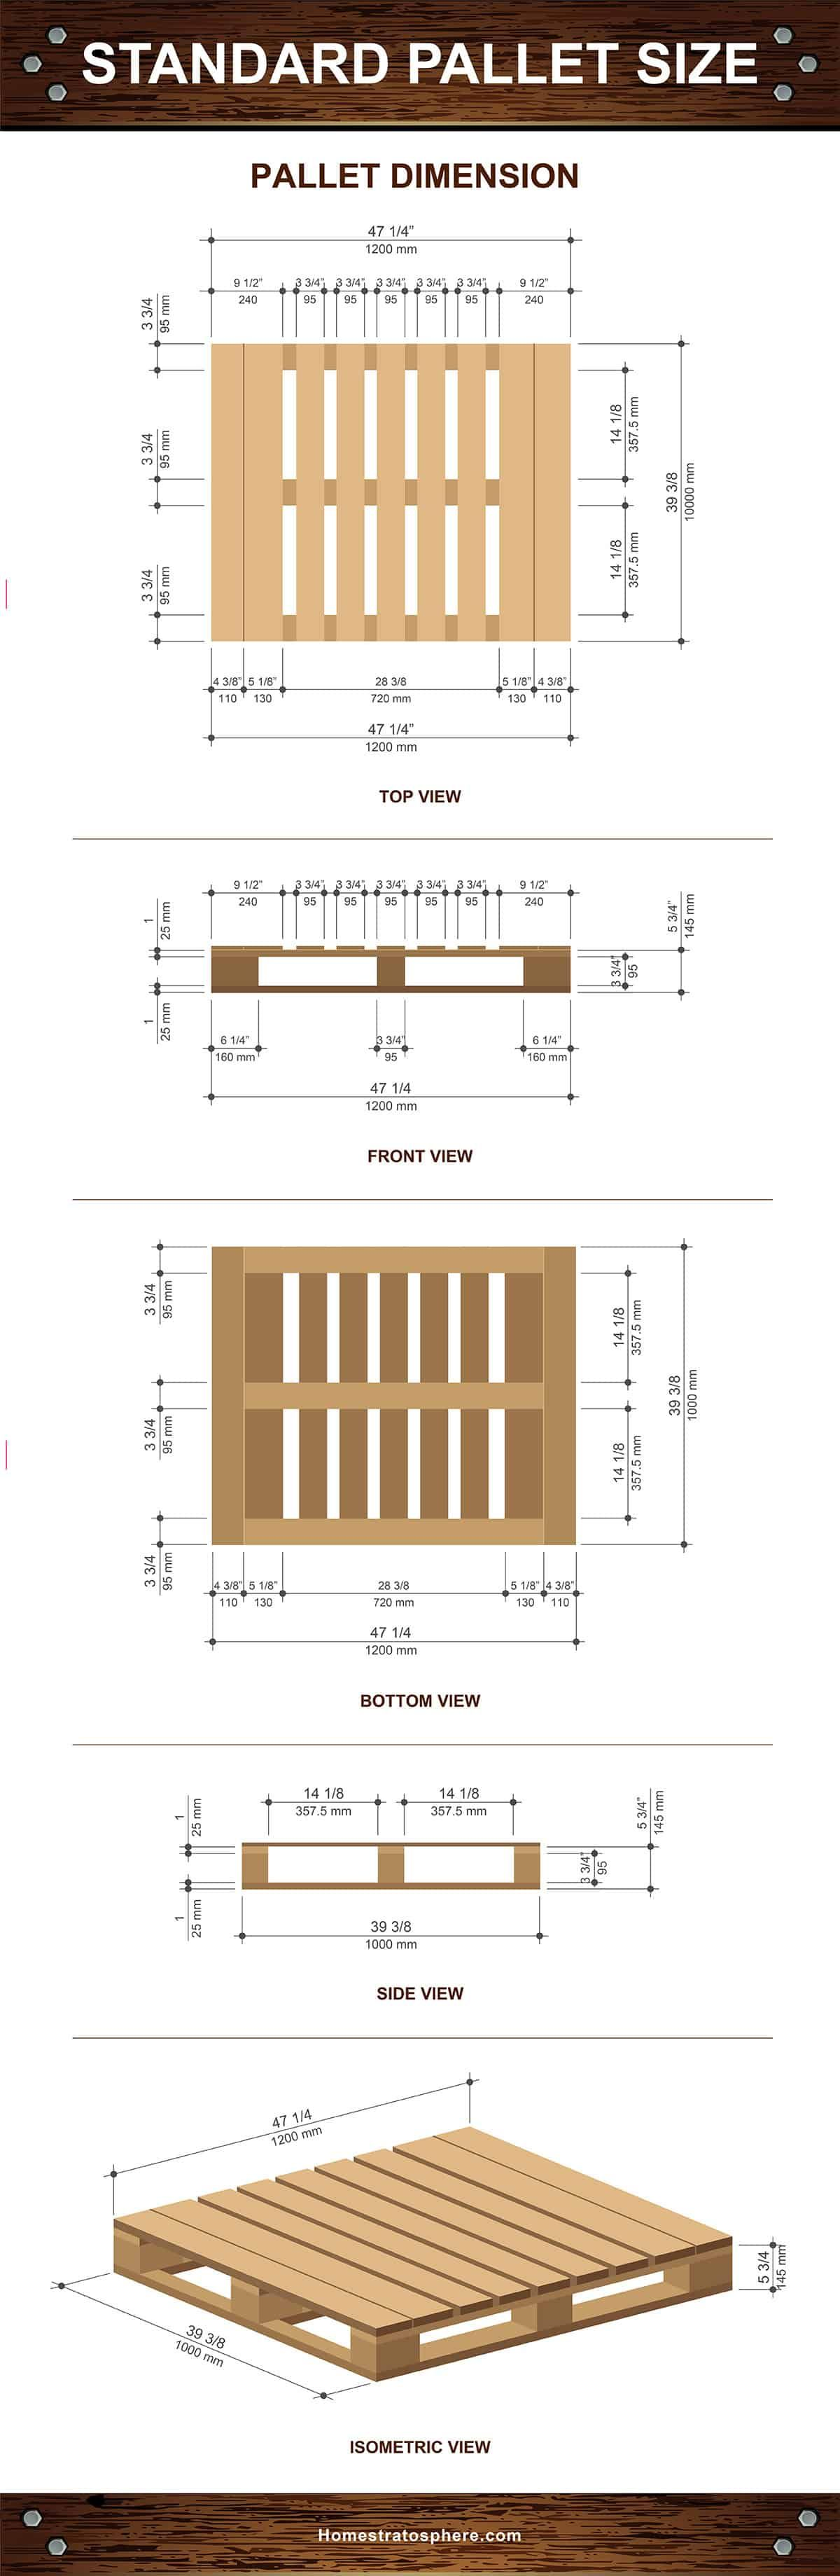 Standard Wood Pallet Dimensions And Sizes Diagrams And Charts In 2020 Pallet Dimensions Wood Pallet Dimensions Standard Pallet Size